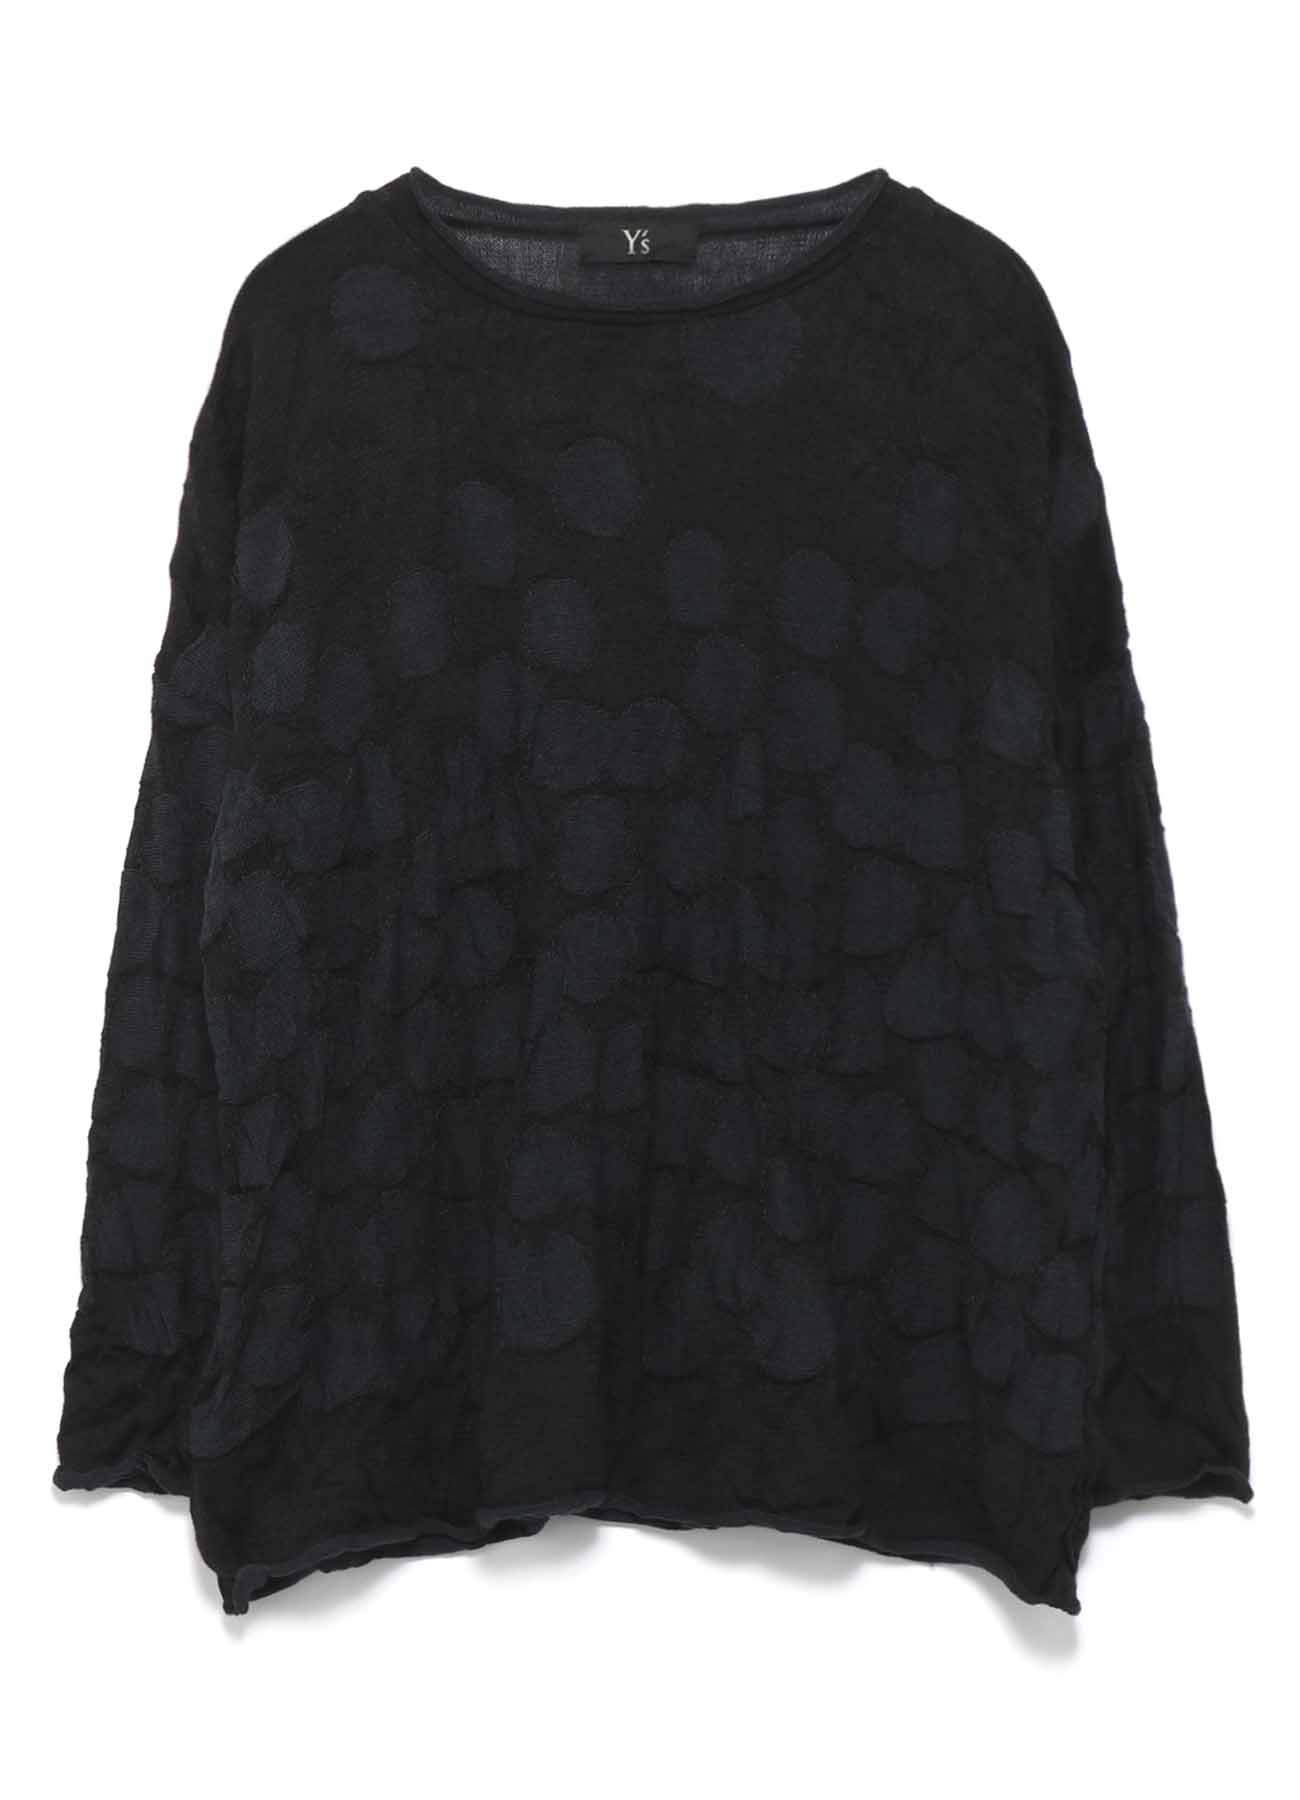 LINKS DOT WRINKLE ROUND NECK LOOSE KNIT PULLOVER